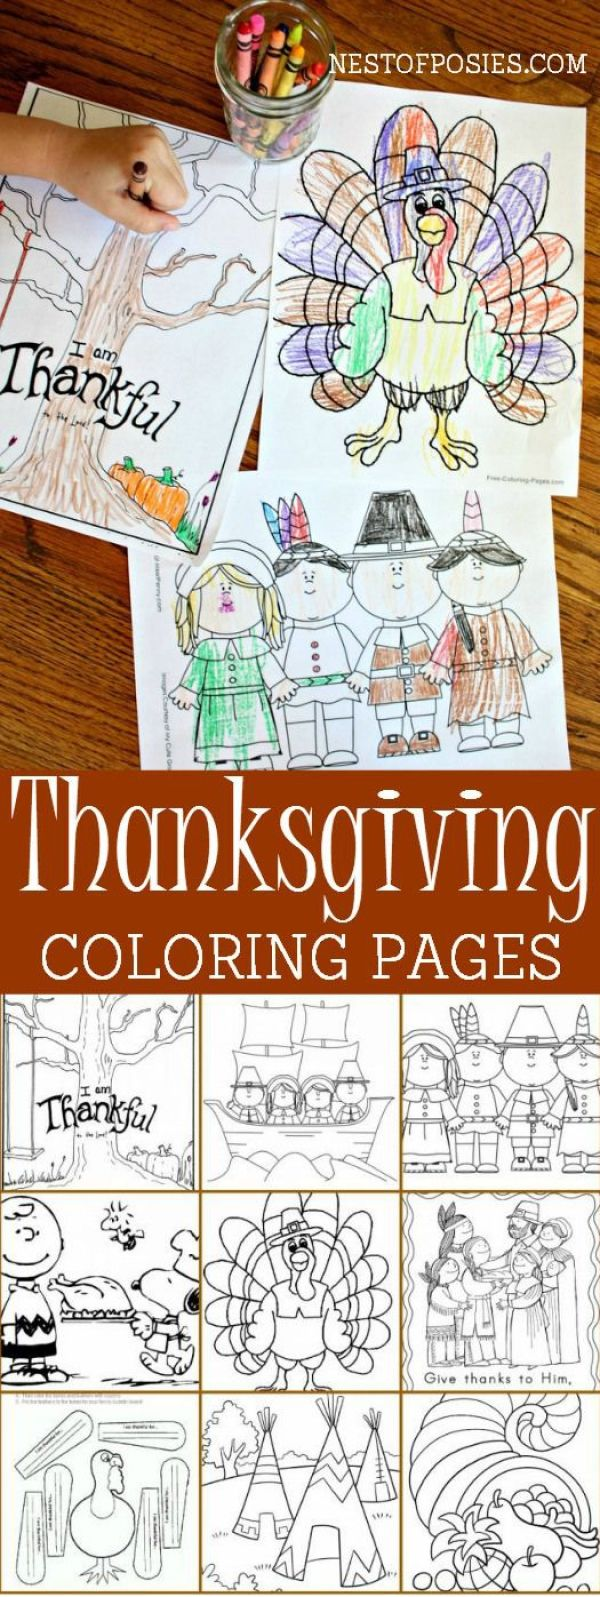 Thanksgiving Coloring Pages- keep little people occupied this Thanksgiving with these.: